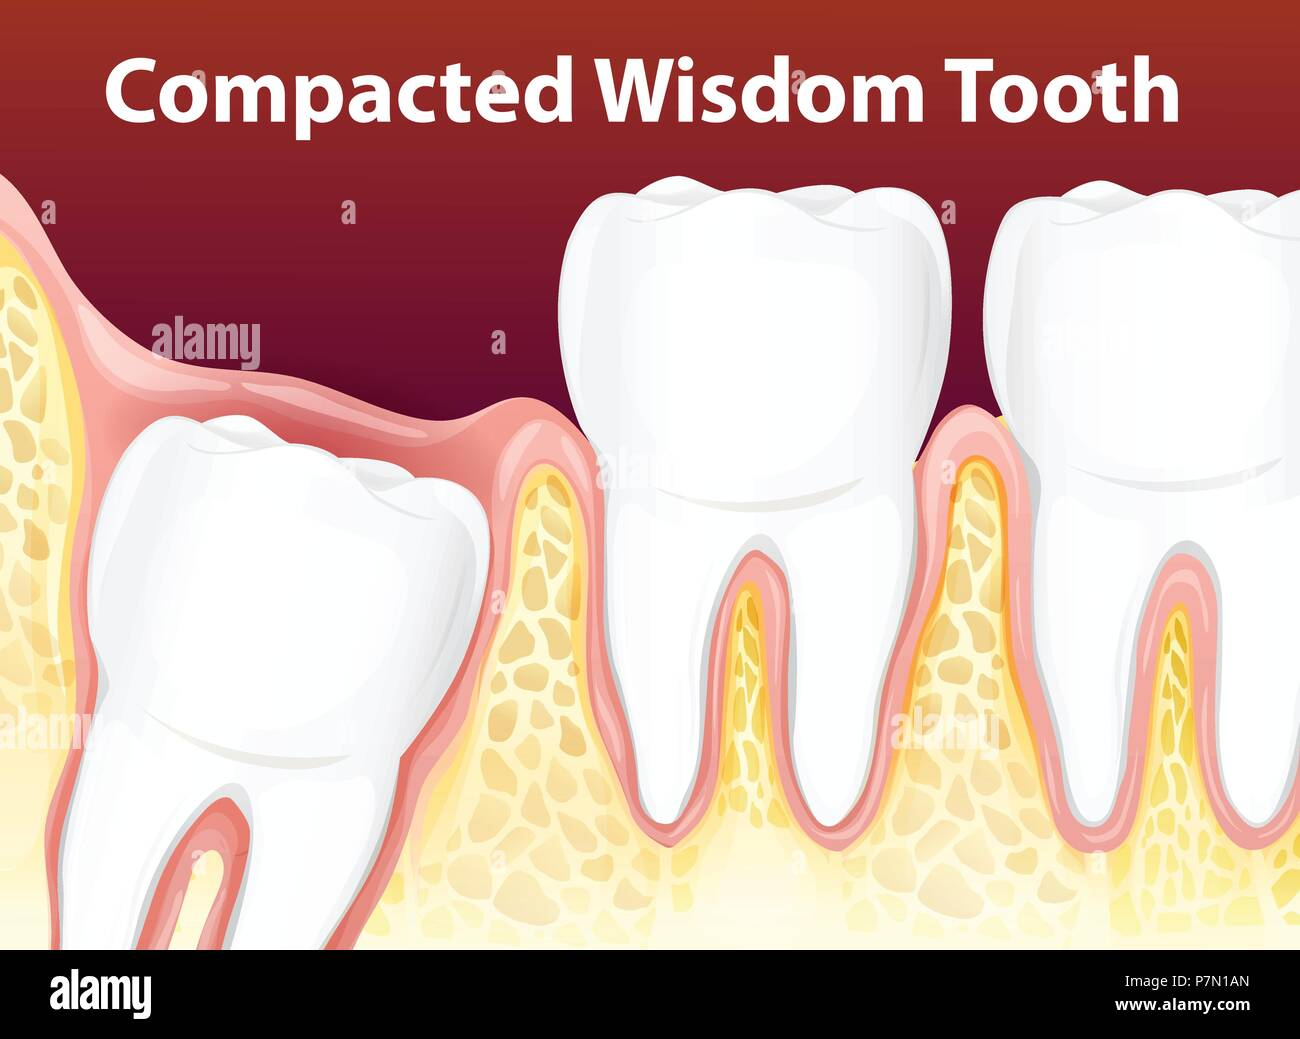 compacted wisdom tooth diagram illustration stock vector art rh alamy com diagram of impacted wisdom teeth Wisdom Teeth Surgery